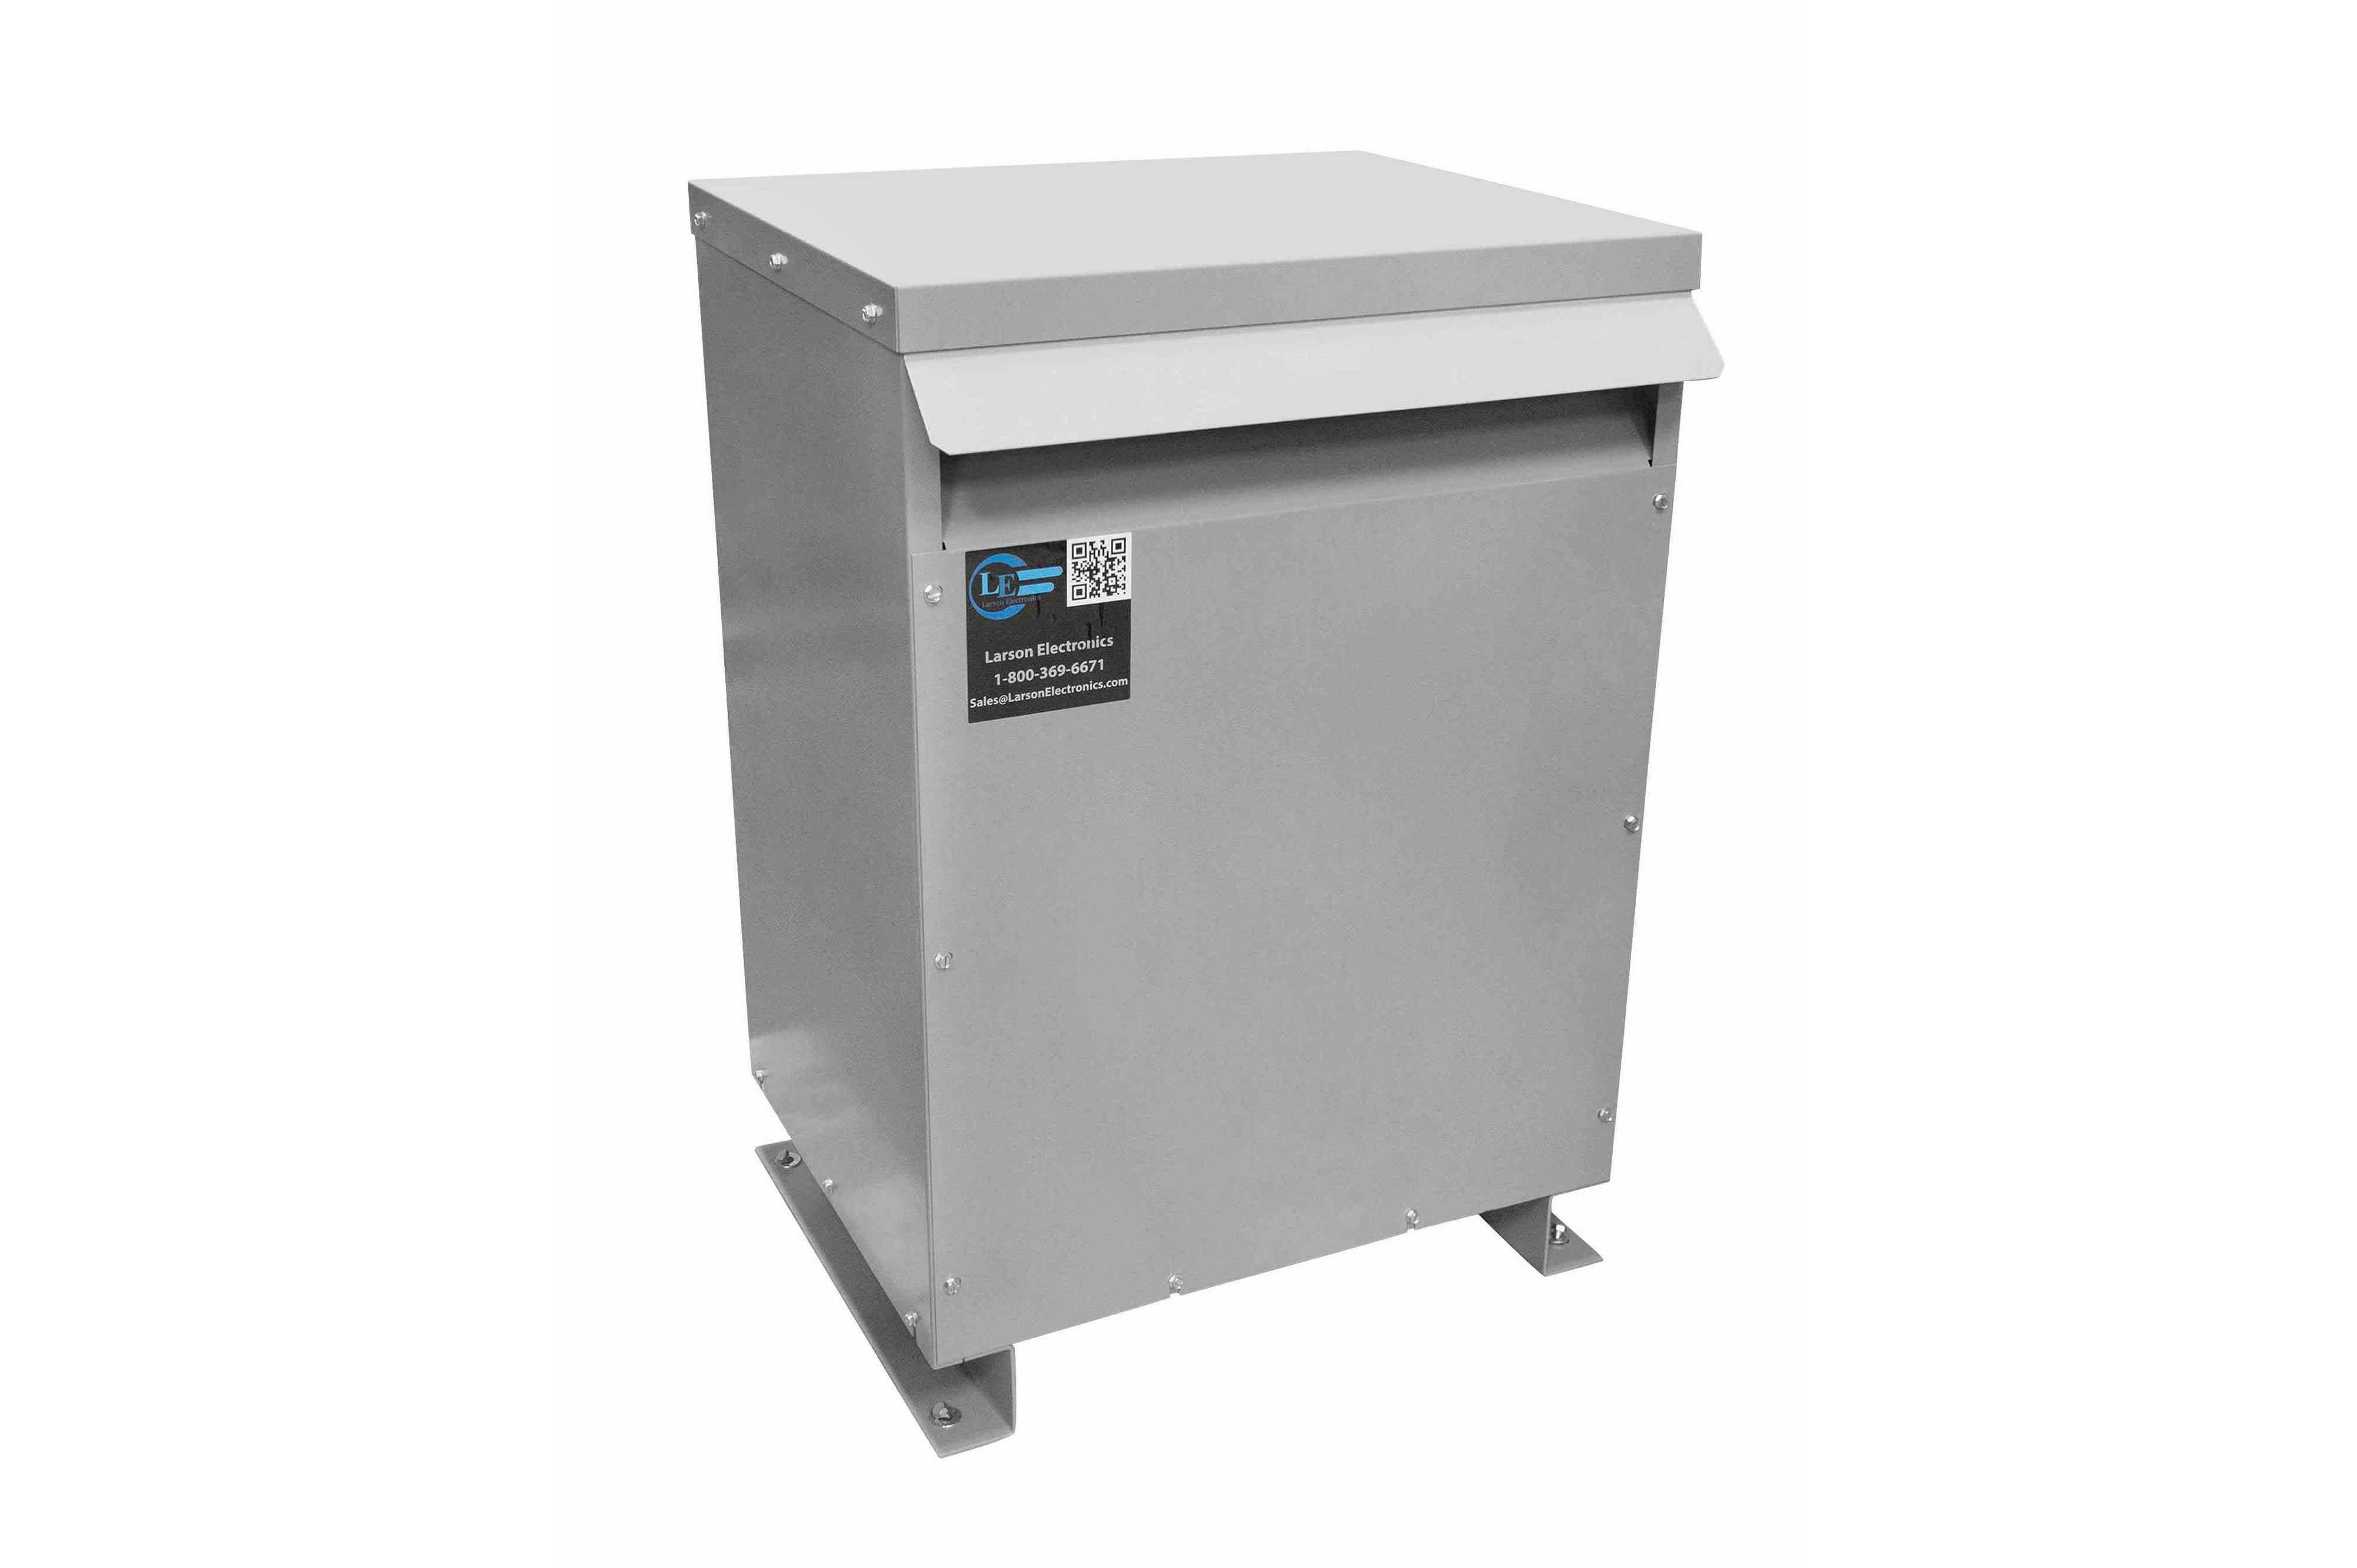 750 kVA 3PH Isolation Transformer, 480V Delta Primary, 600V Delta Secondary, N3R, Ventilated, 60 Hz